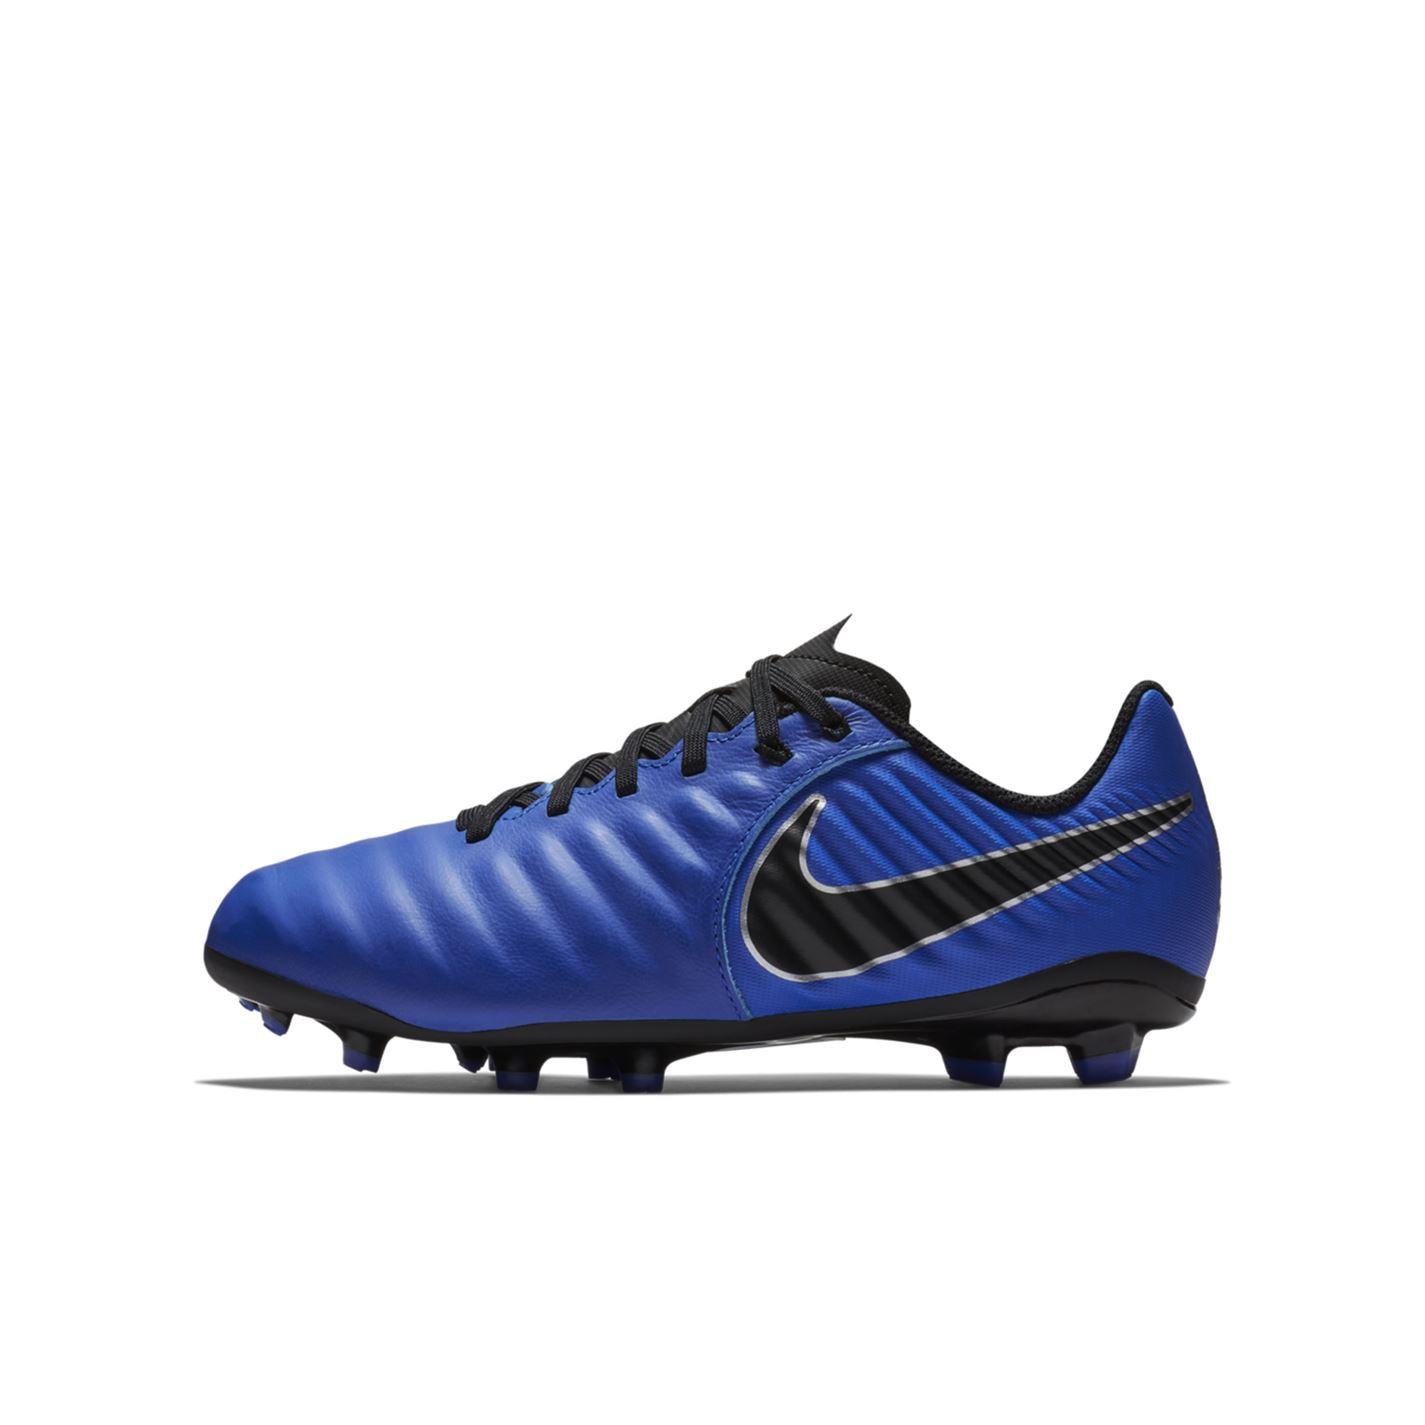 fe40c2e2db9b ... Nike Tiempo Legend Academy FG Firm Ground Football Boots Juniors Soccer  Cleats